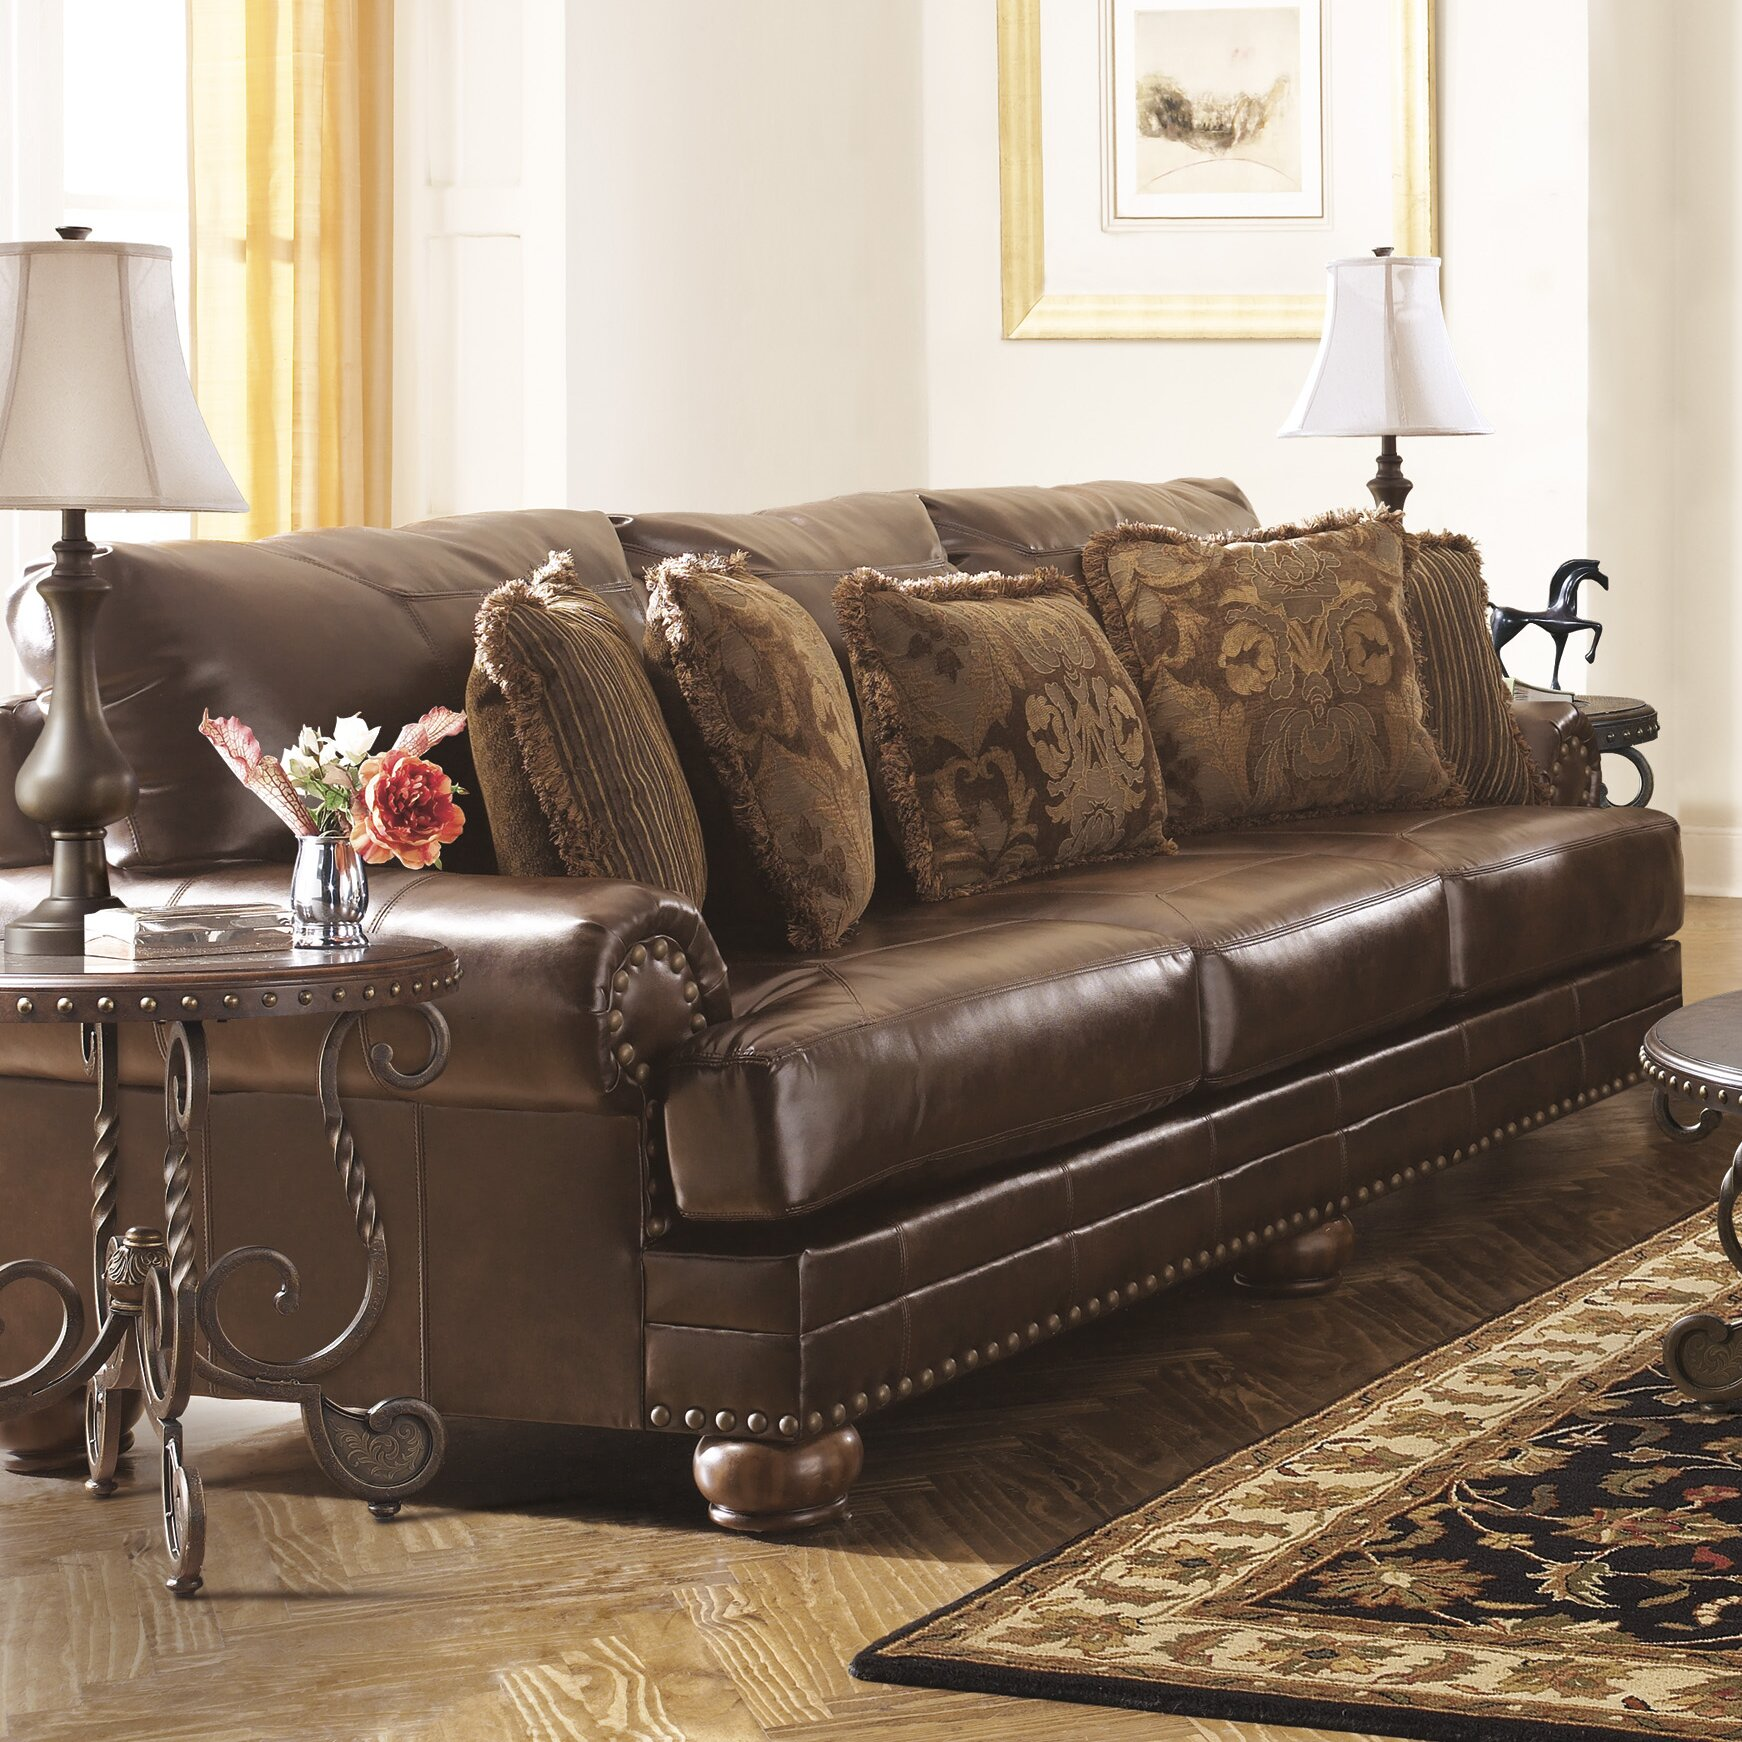 Ashley Furniature: Signature Design By Ashley Leighton Leather Sofa & Reviews